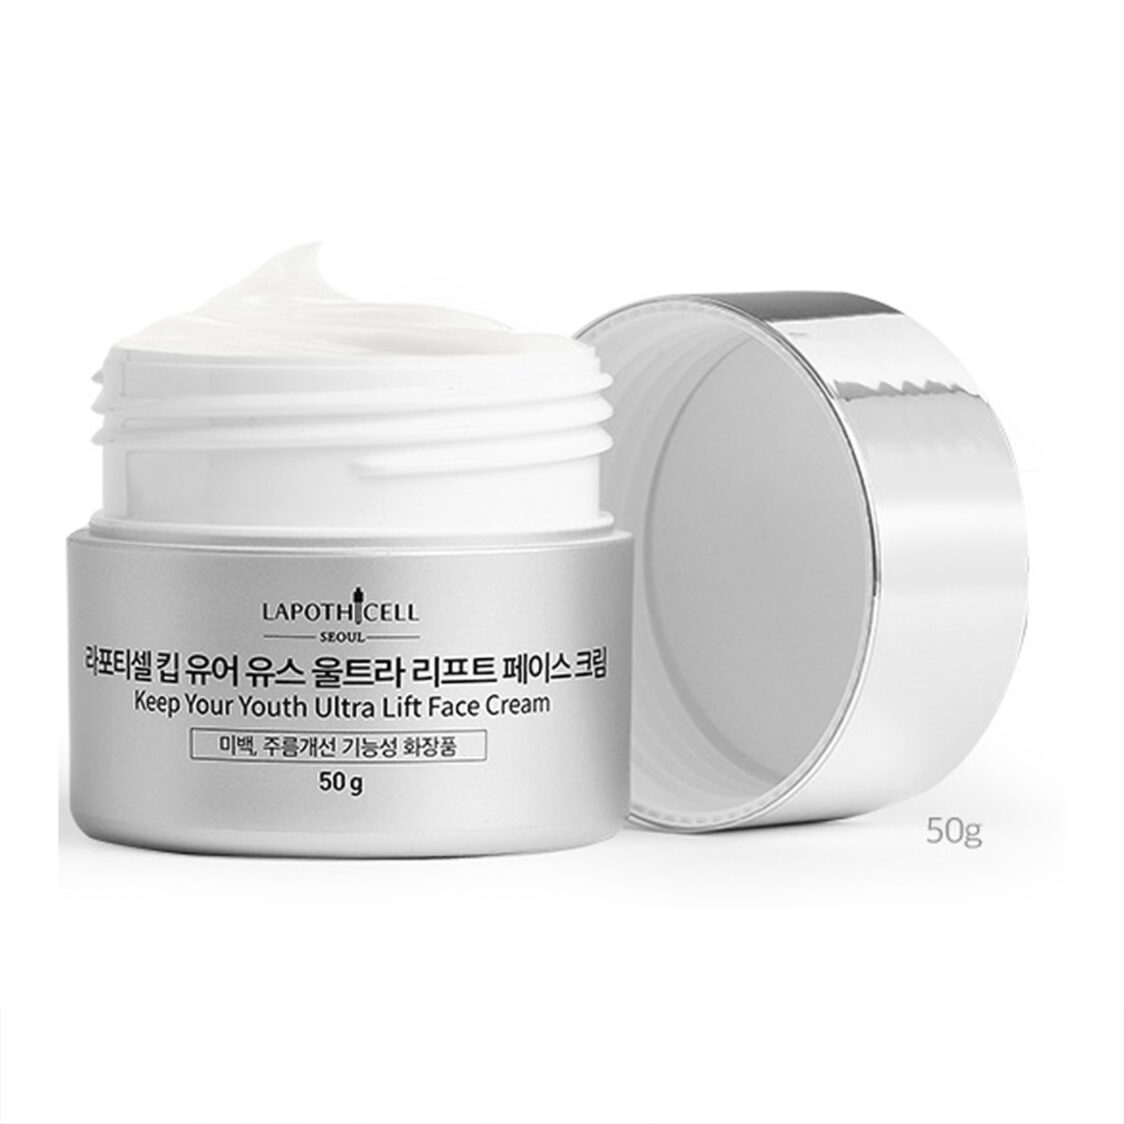 Lapothicell Keep Your Youth Ultra Lift Face Cream 50ml